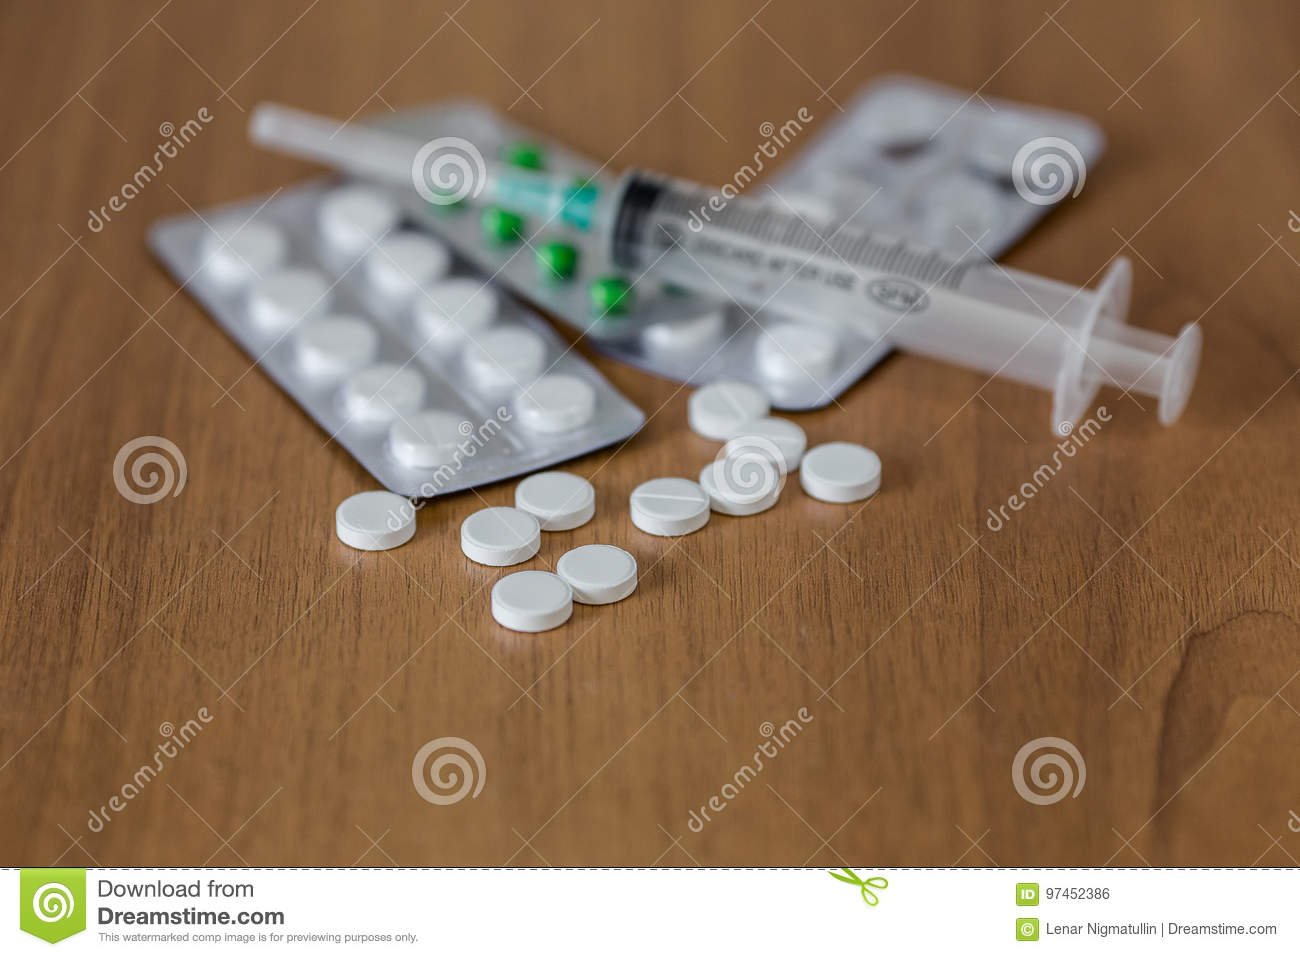 Drugs and syringes on wooden table